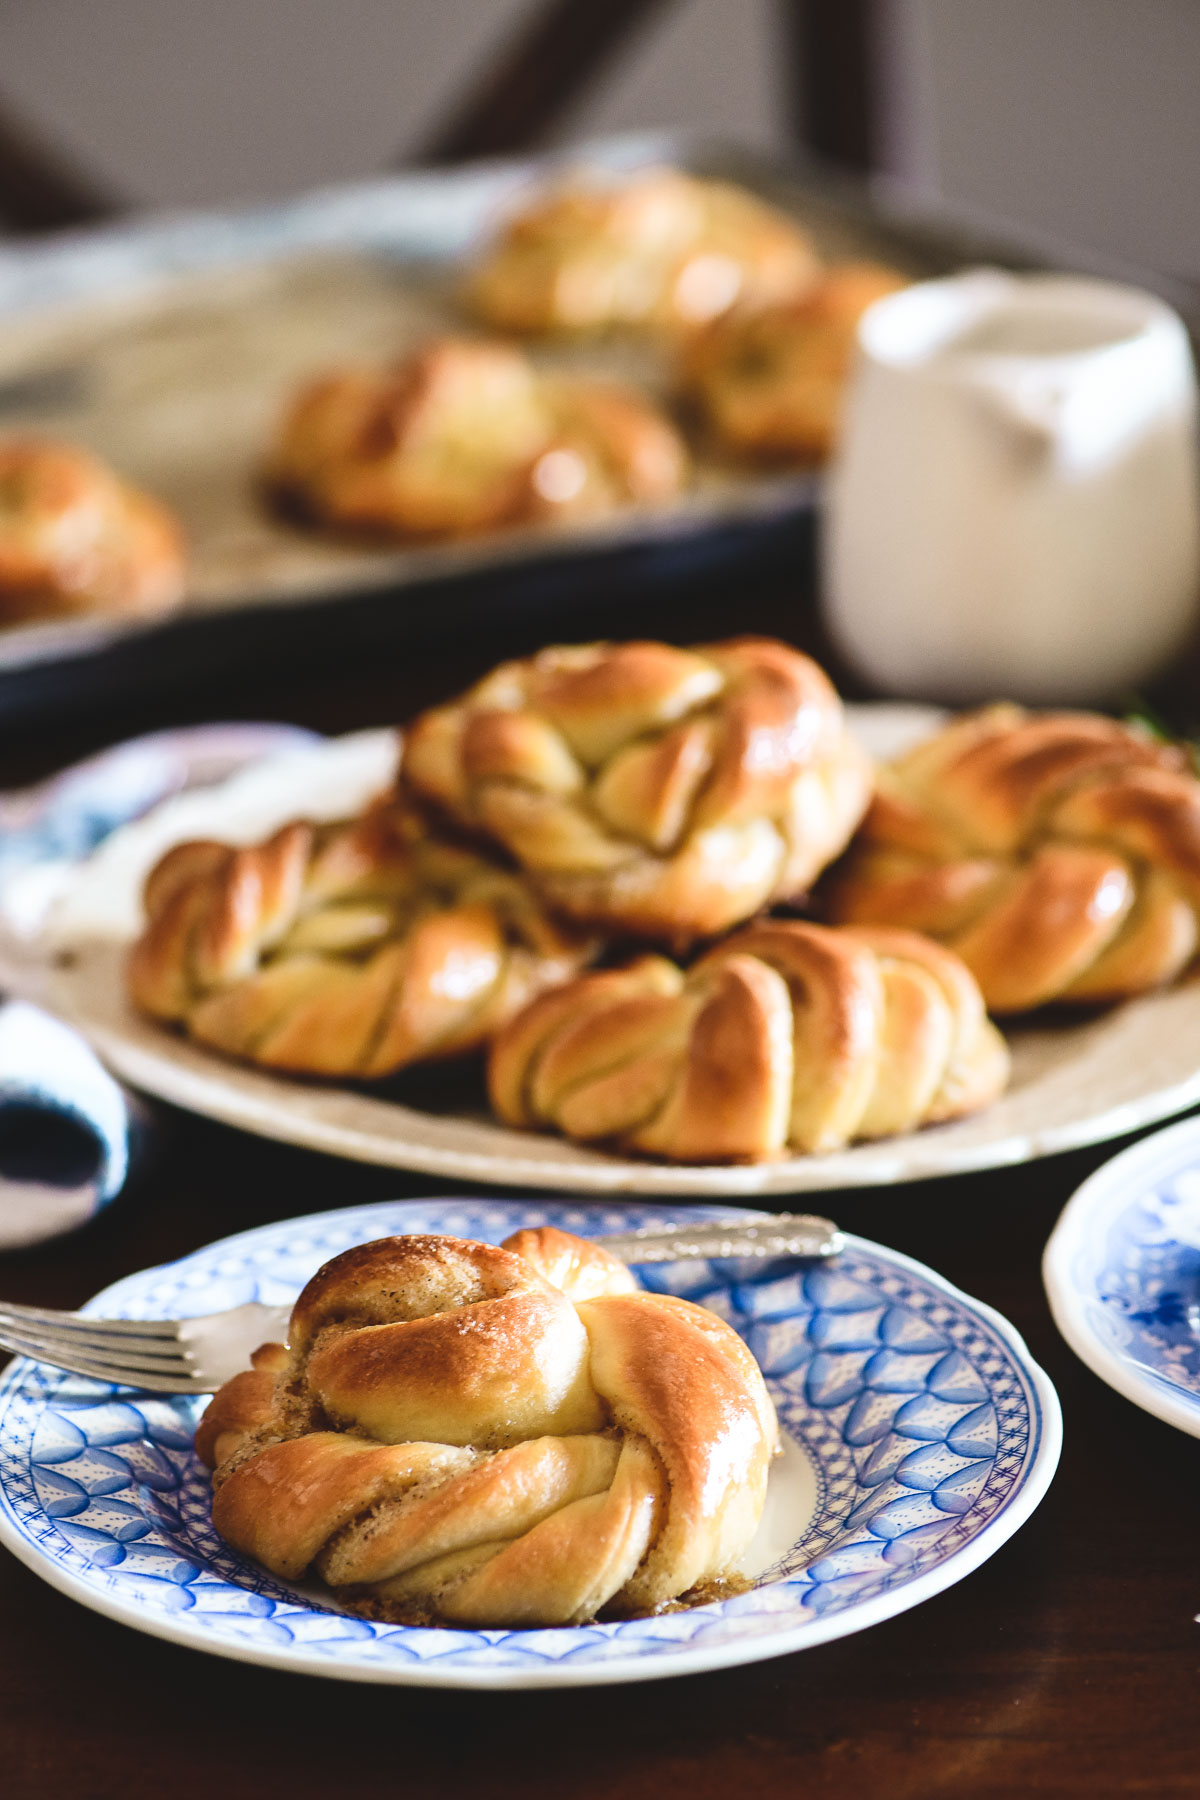 cardamom buns on a table